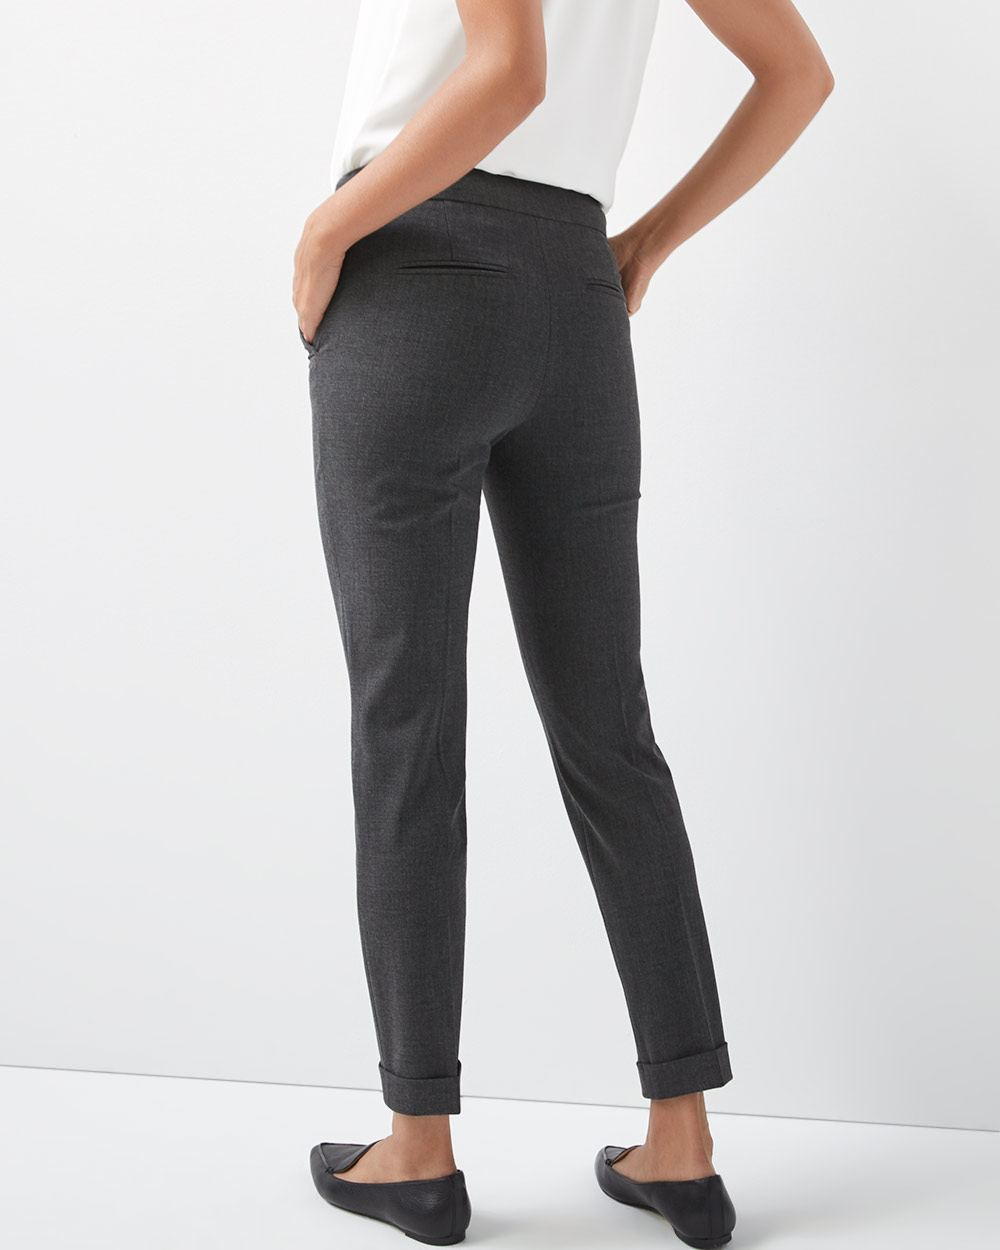 Heather grey Stretch Slim fit Slim leg ankle Pant